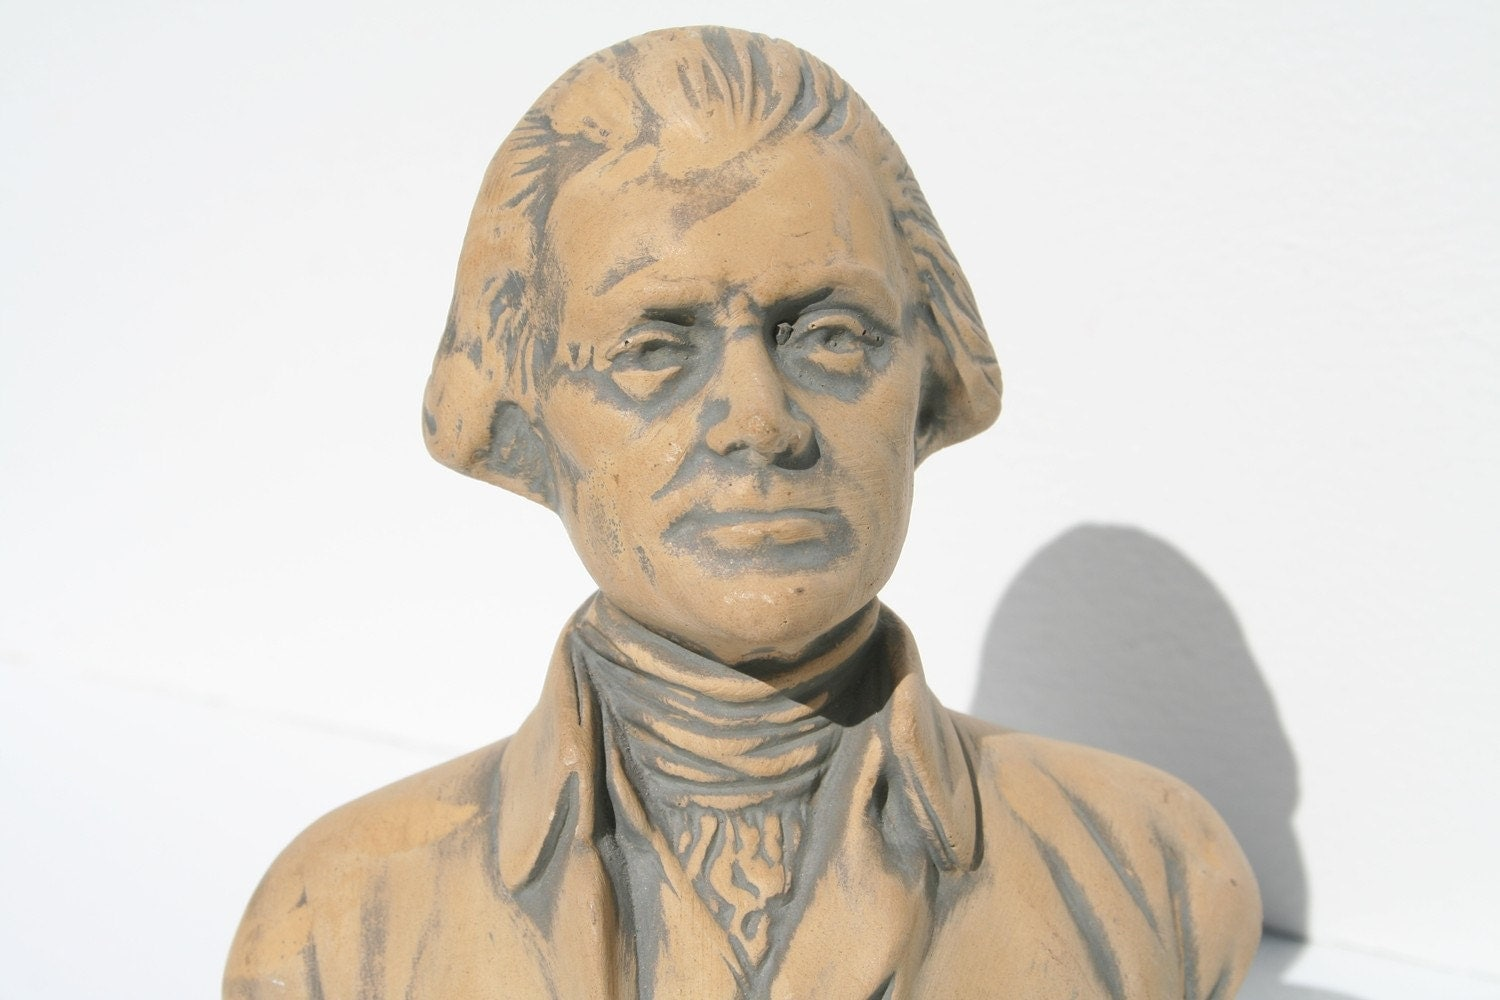 Hand Made Ceramic Bust of Thomas Jefferson